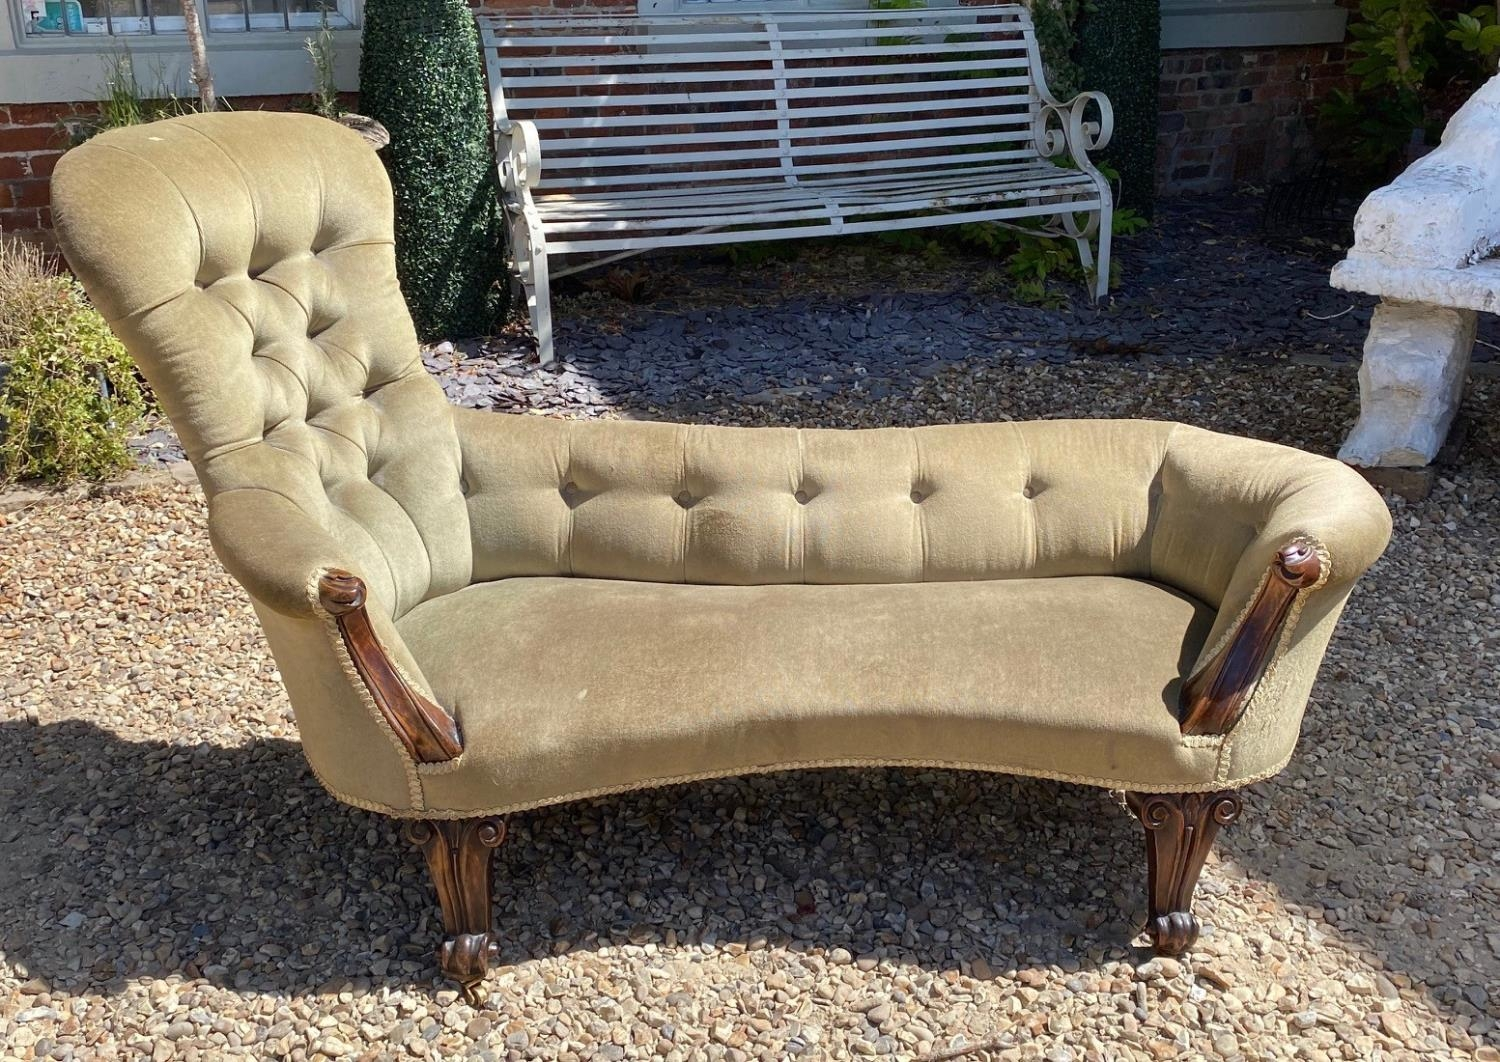 A VICTORIAN MAHOGANY FRAMED TWO SEAT WINDOW CHAISE LOUNGE Button back green velvet upholstery. (